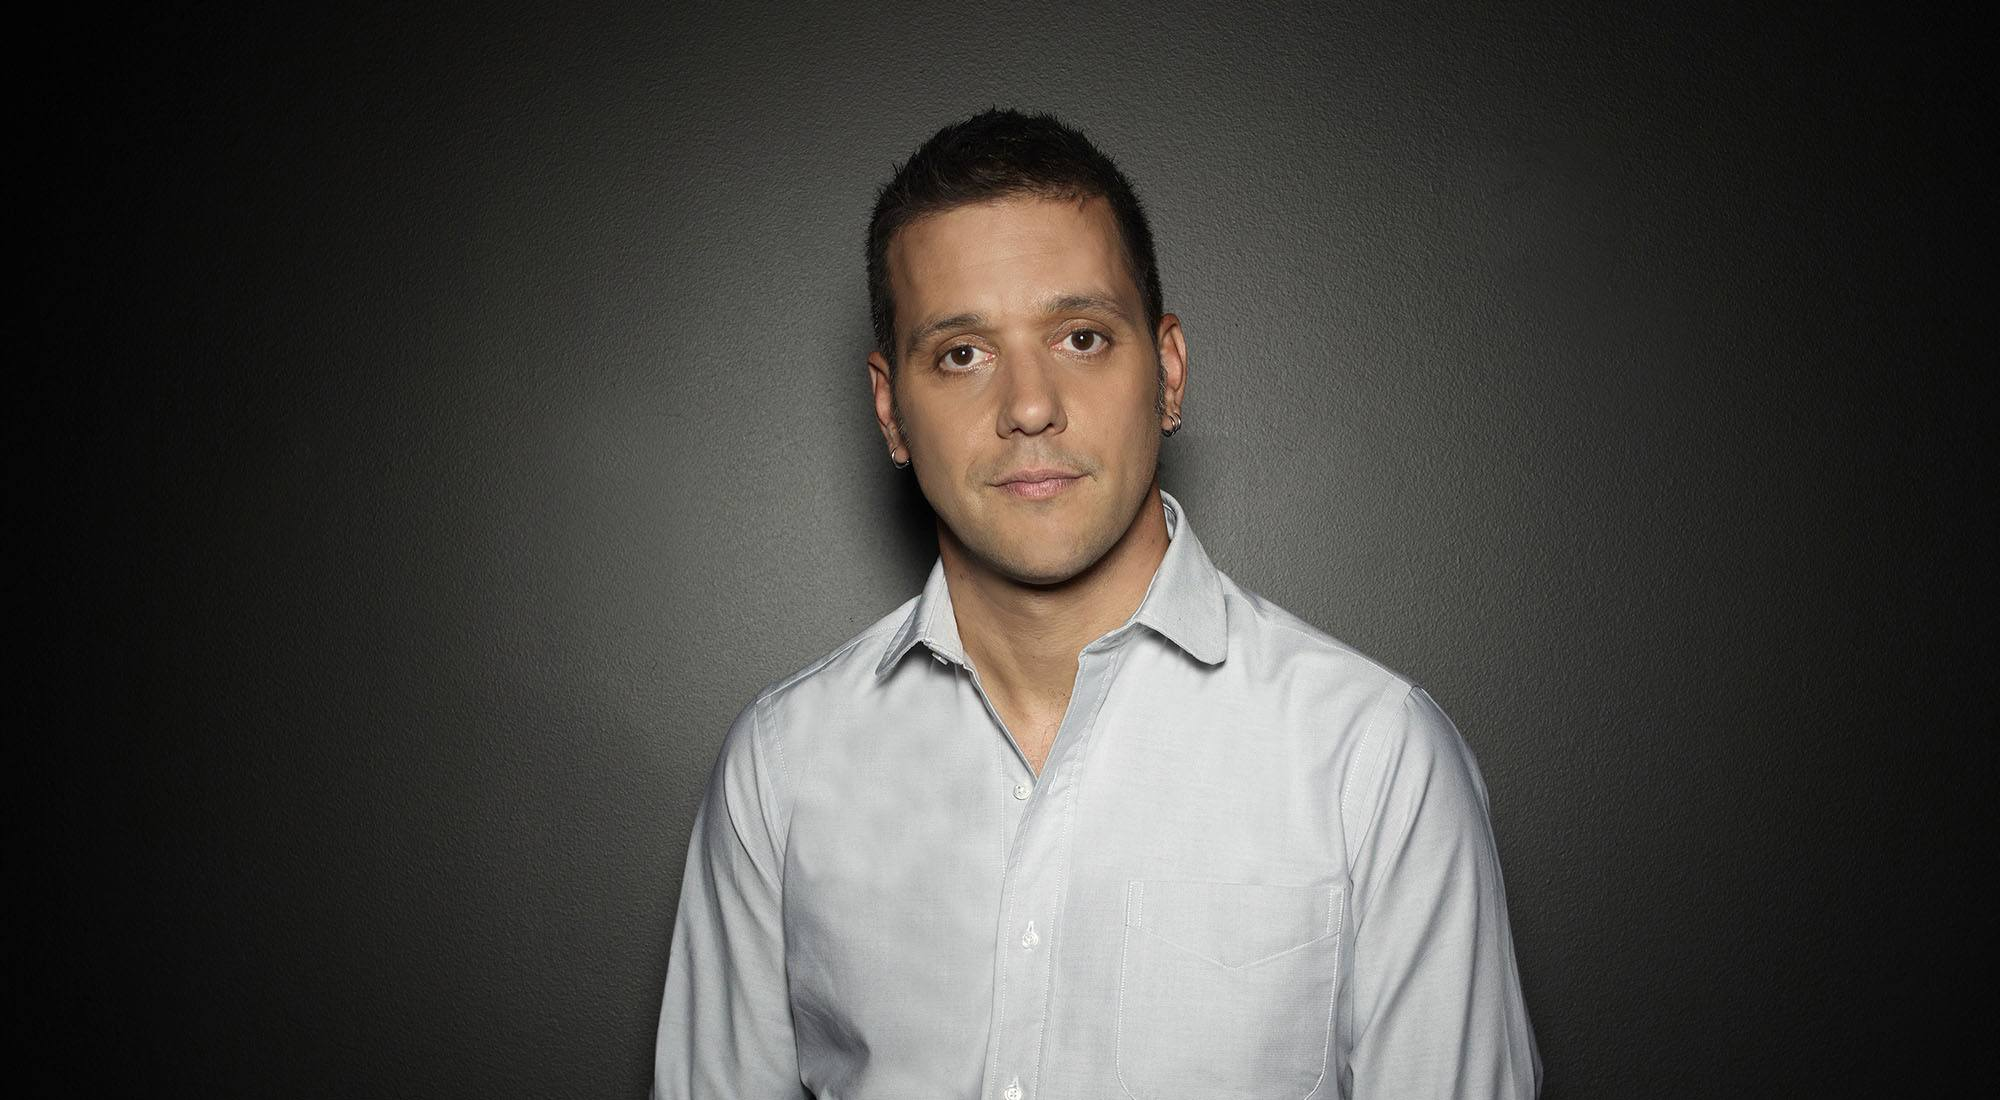 George stroumboulopoulos cbc